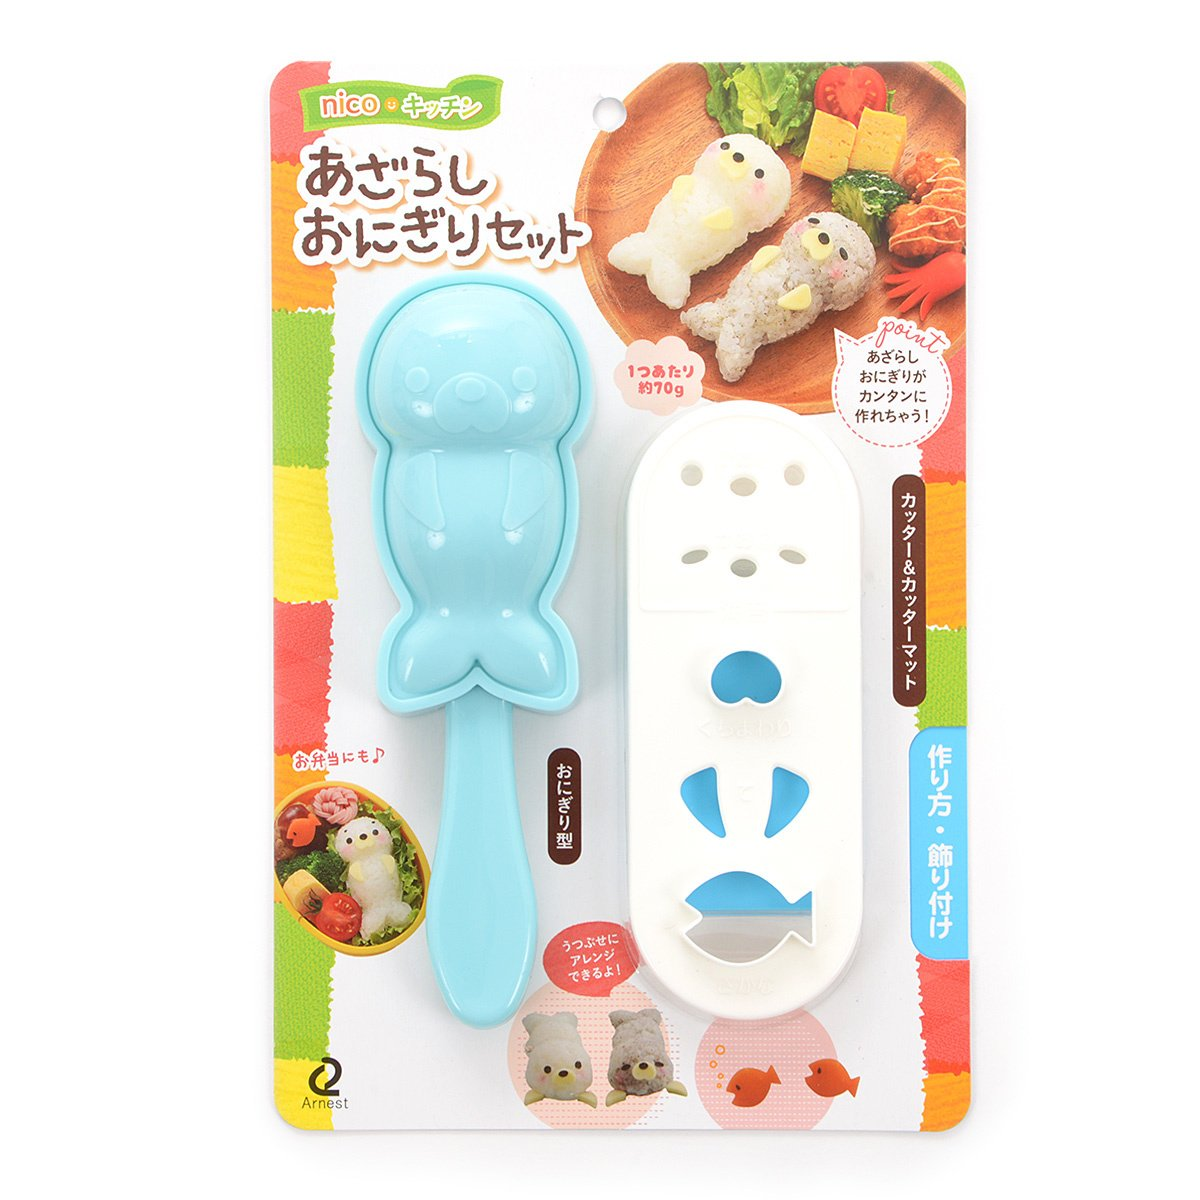 Cookware & Kitchen Tools - Shop by Category | Tokyo Otaku Mode Shop